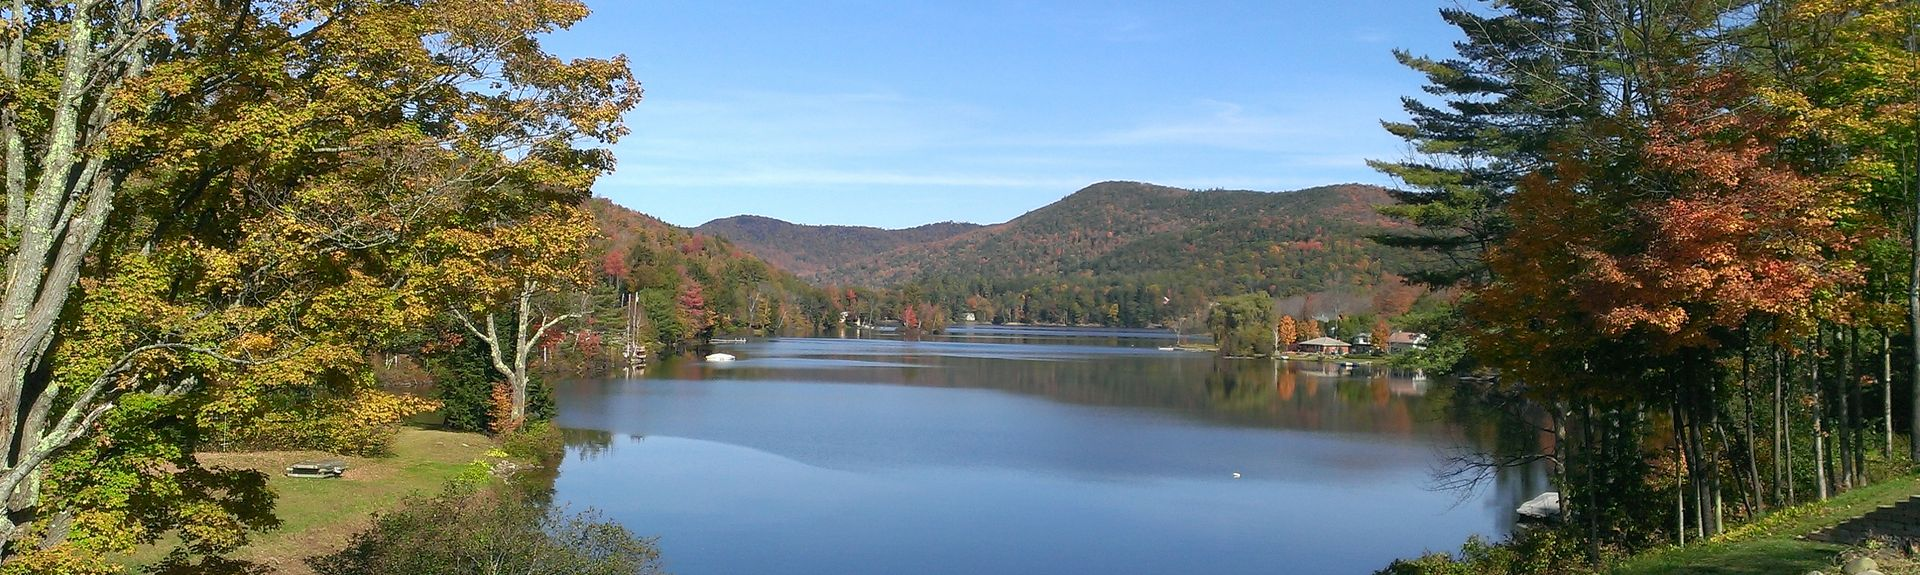 Quechee State Park, Quechee, Vermont, United States of America